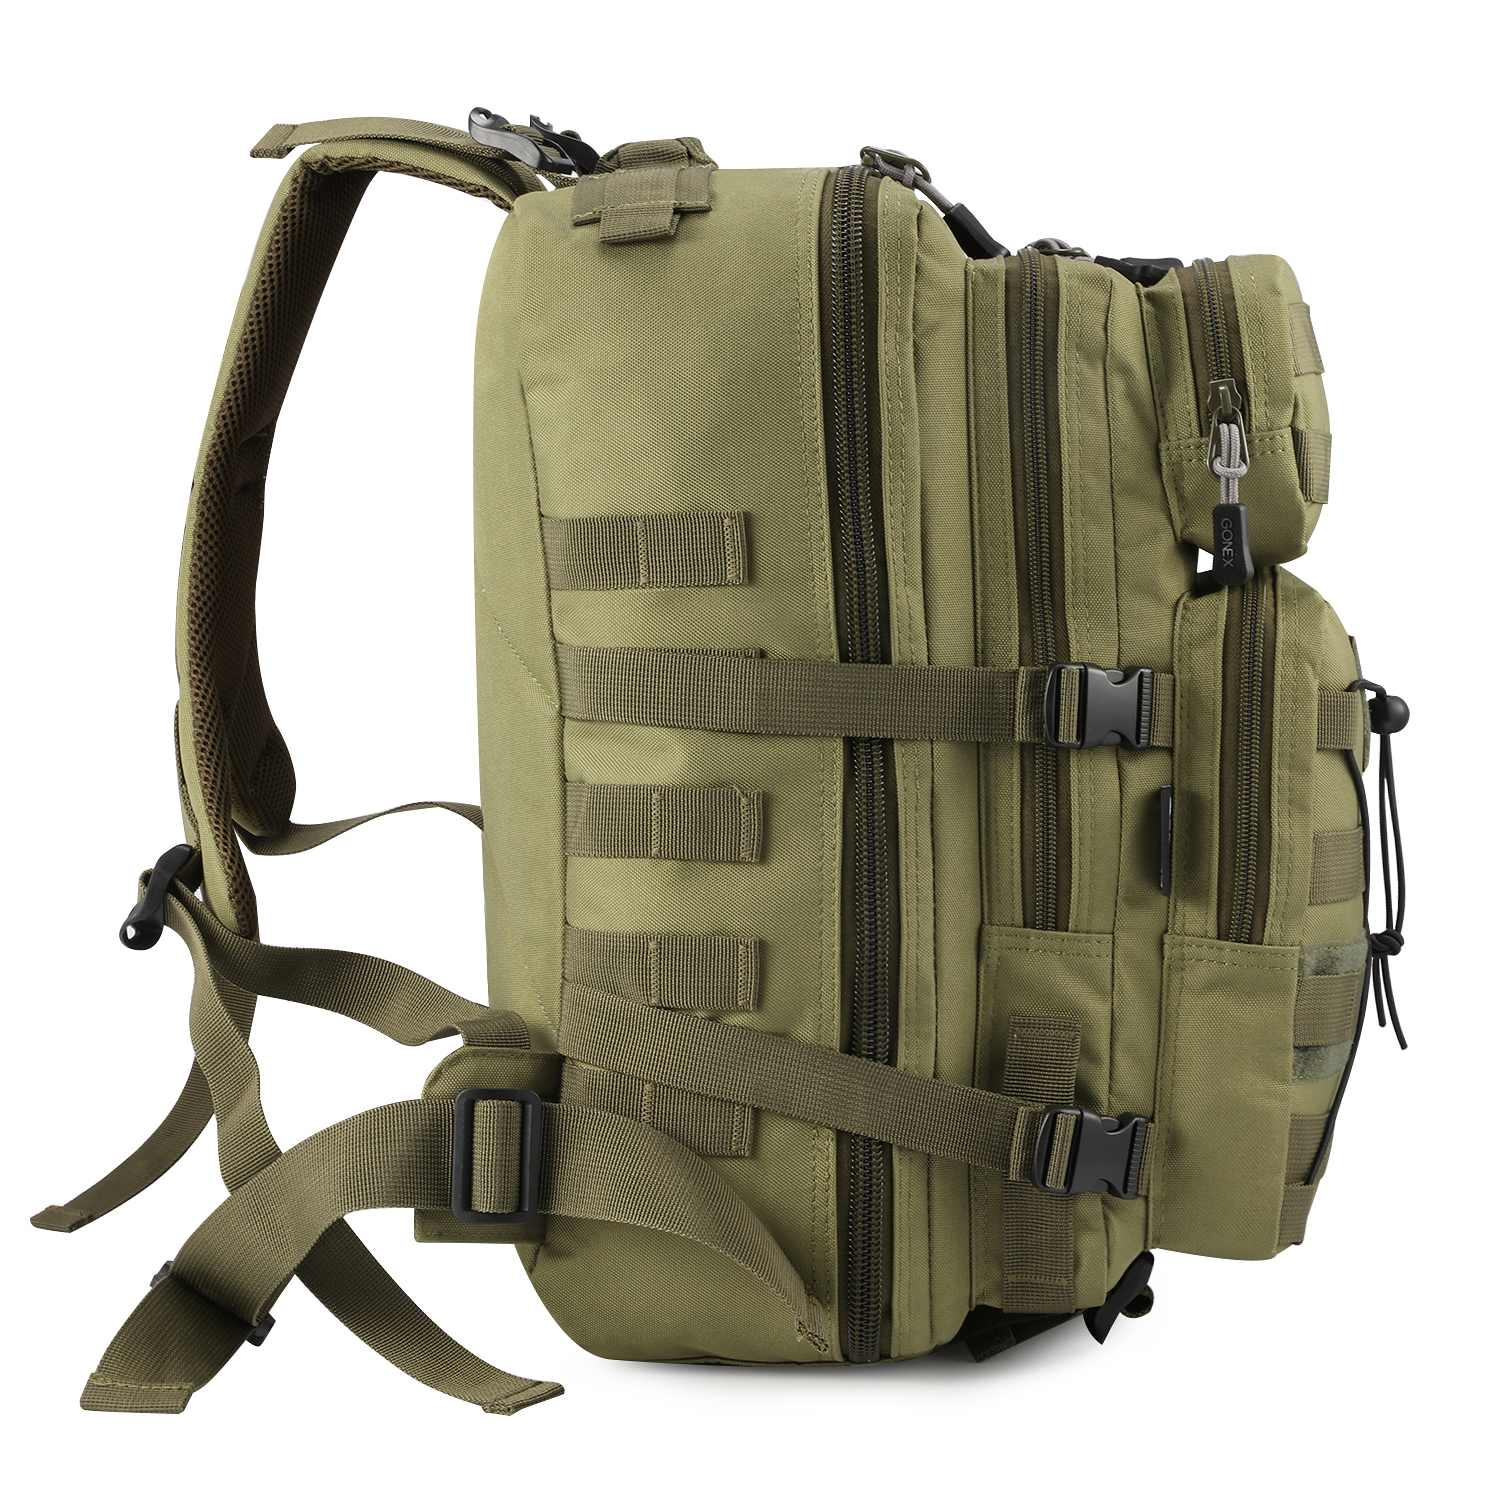 35l Rucksack Gonex 35l Molle Tactical Outdoor Military Assault Backpack